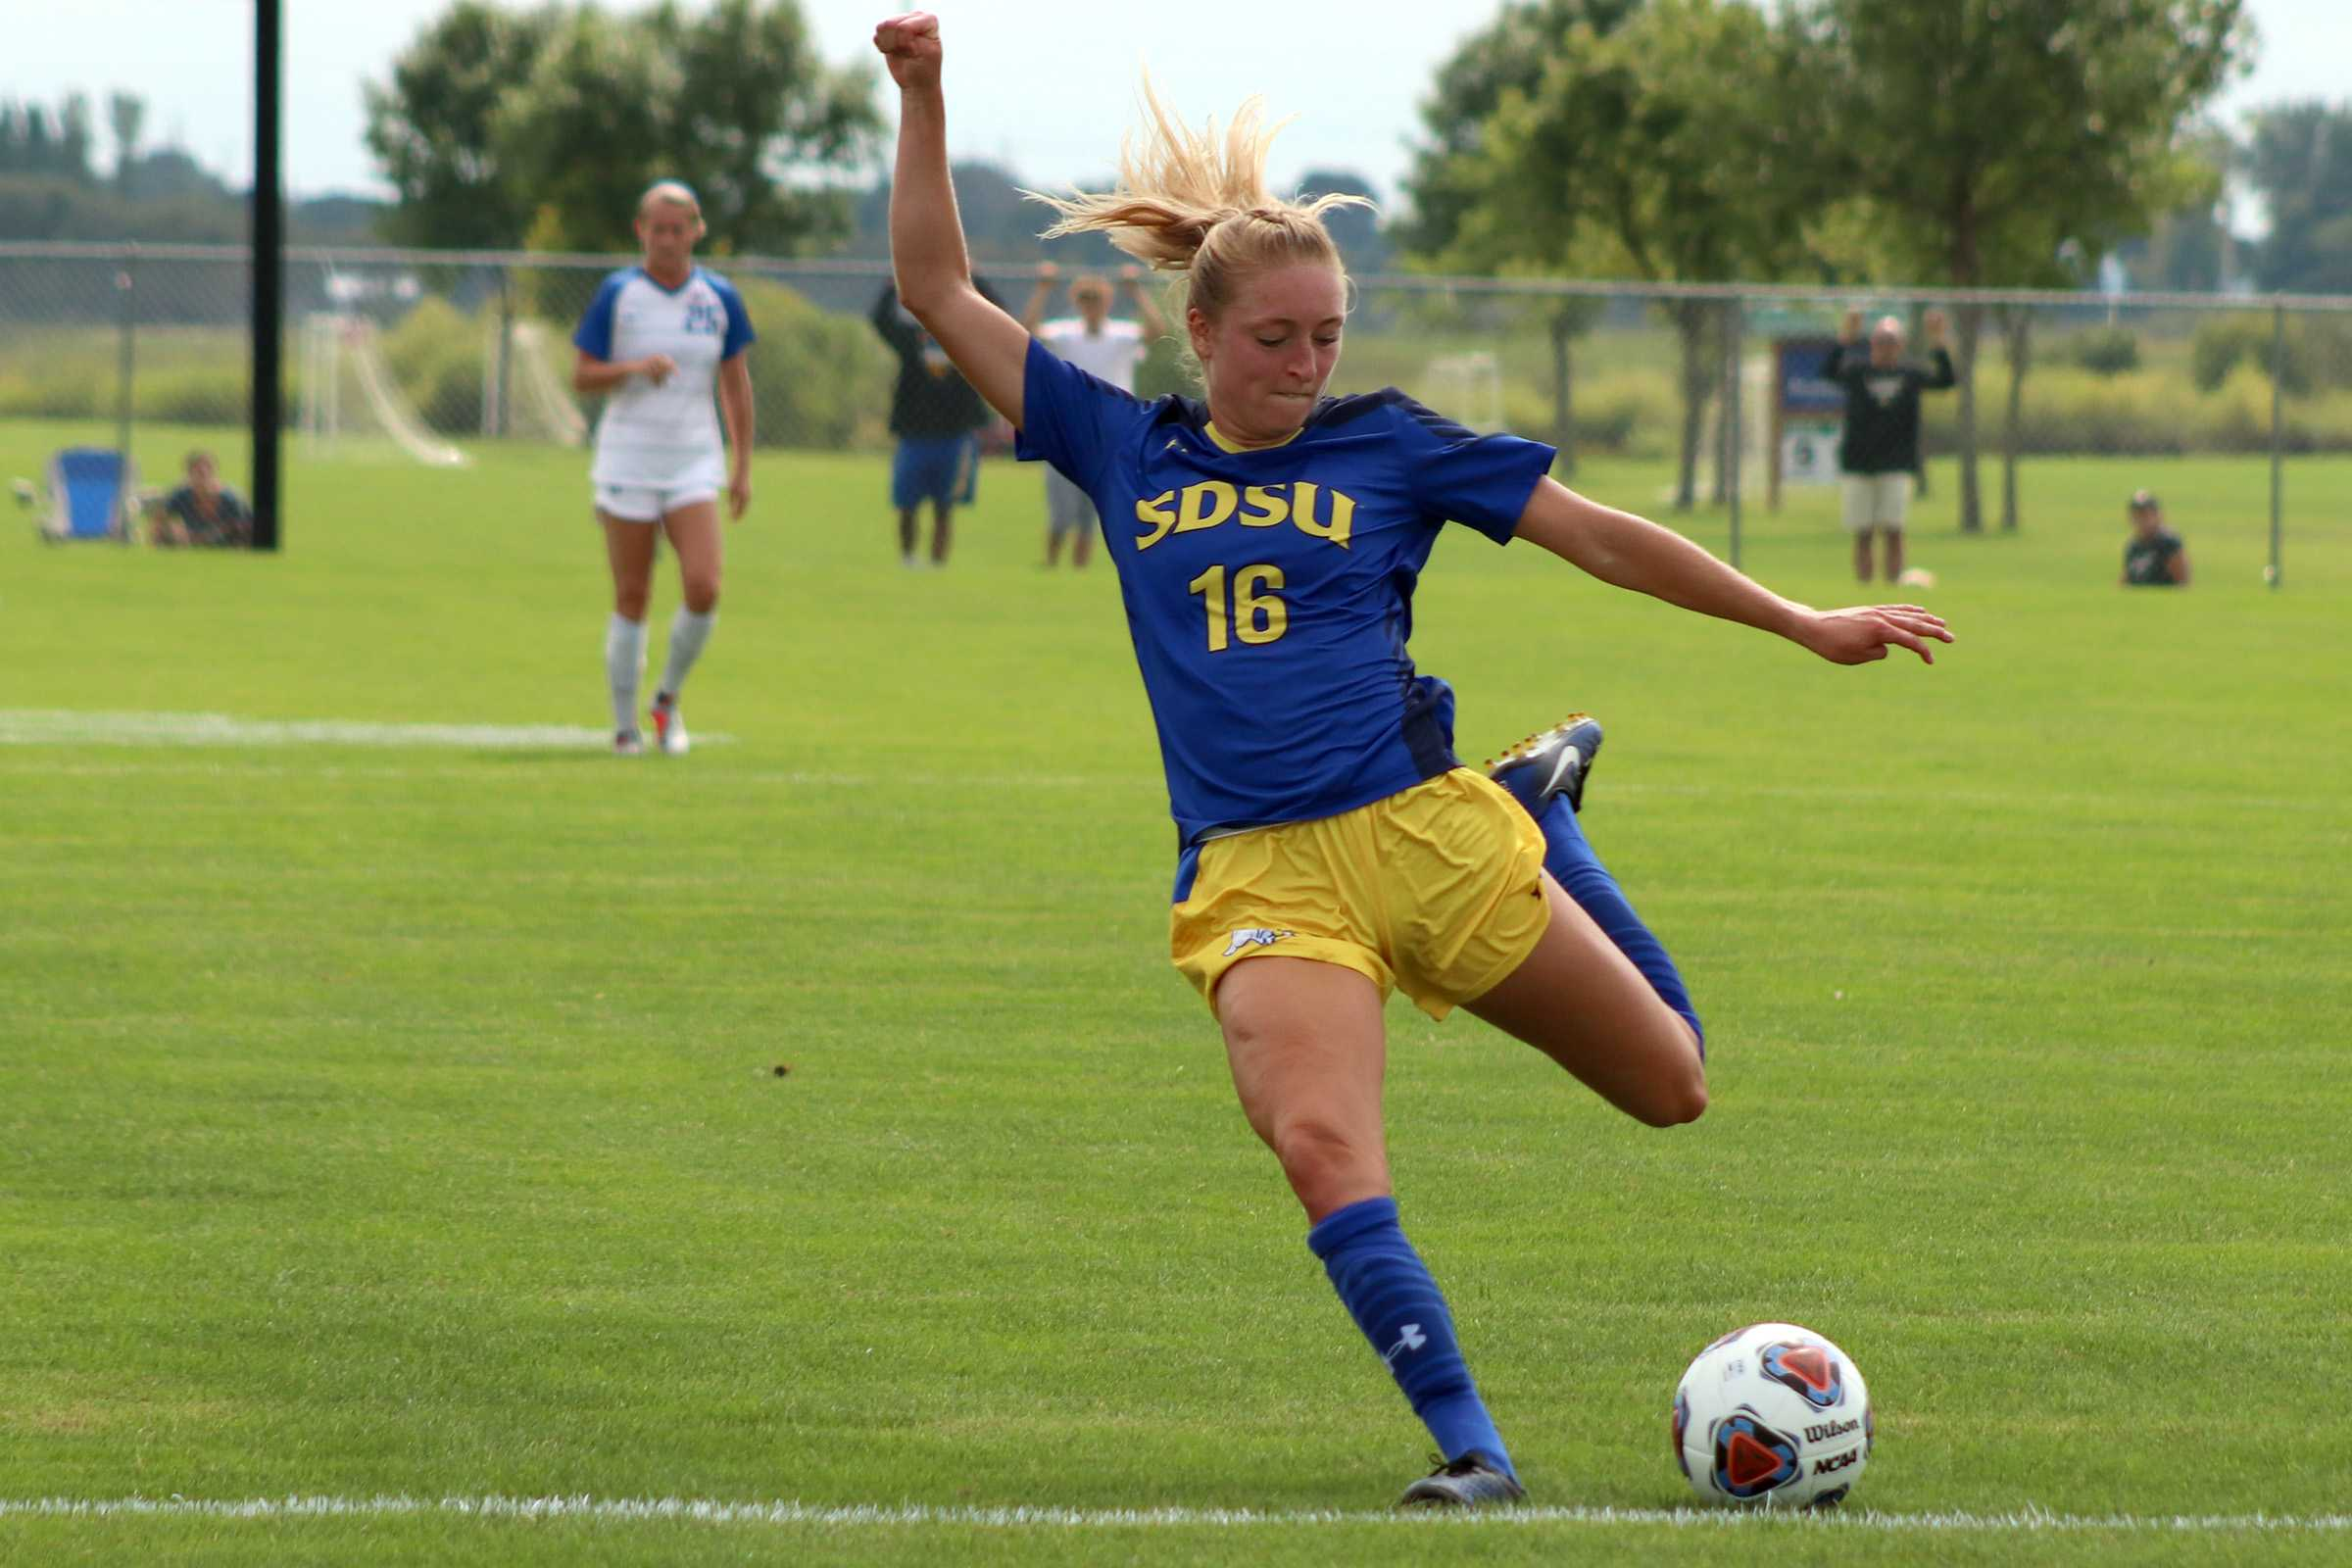 MIRANDA SAMPSON Sophomore forward Marisa Schulz (16) shoots from the top of the box during the SDSU vs. Creighton soccer match on Sunday, Sept. 2 at the Fishback Soccer Park. The Jackrabbits lost 1-0 to the Bluejays.